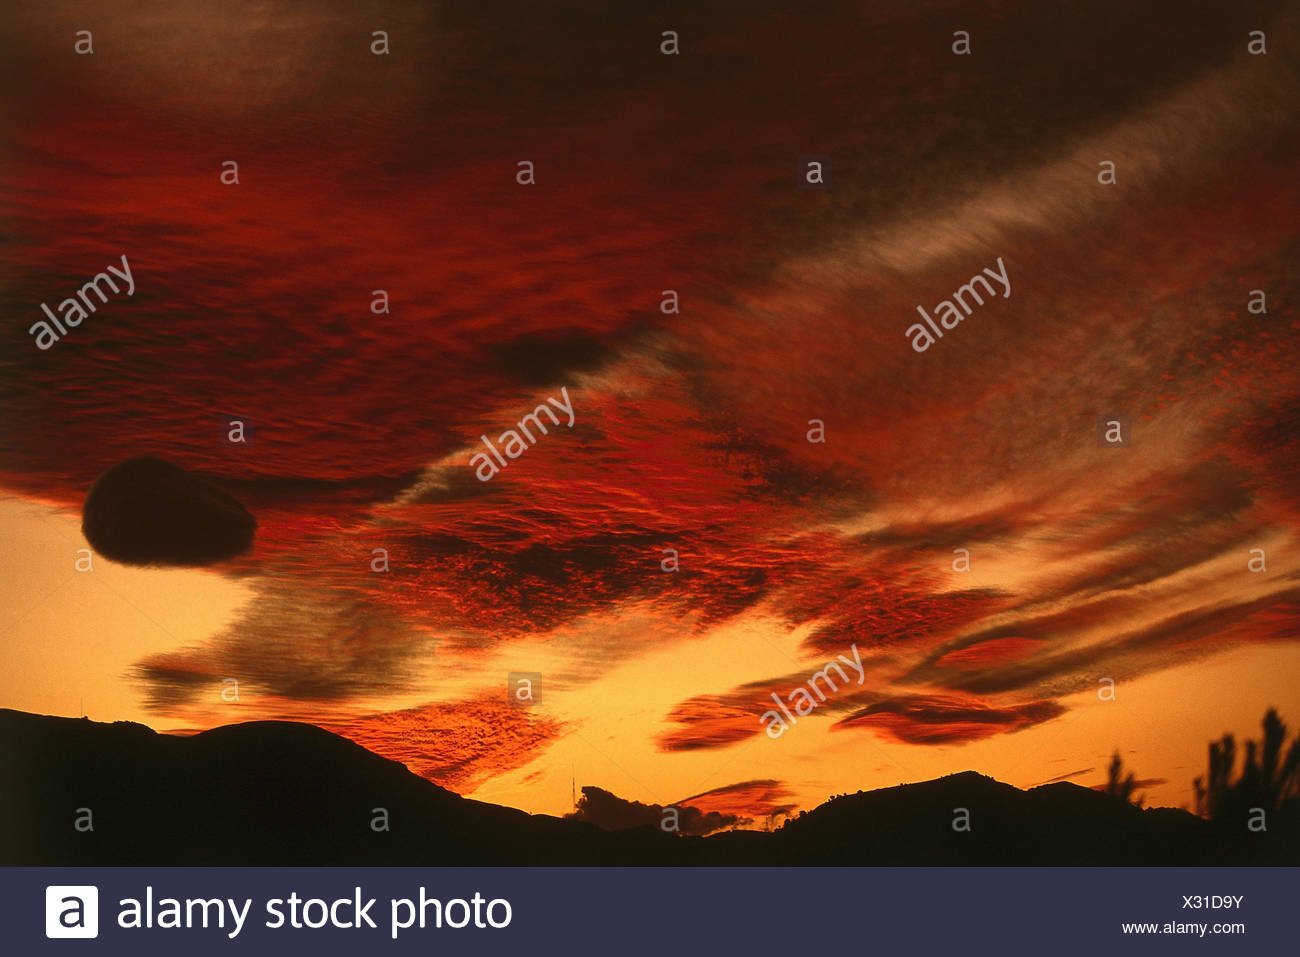 Scenery, afterglow, beautyful clouds, heaven, clouds, light mood, red, evening, - Stock Image